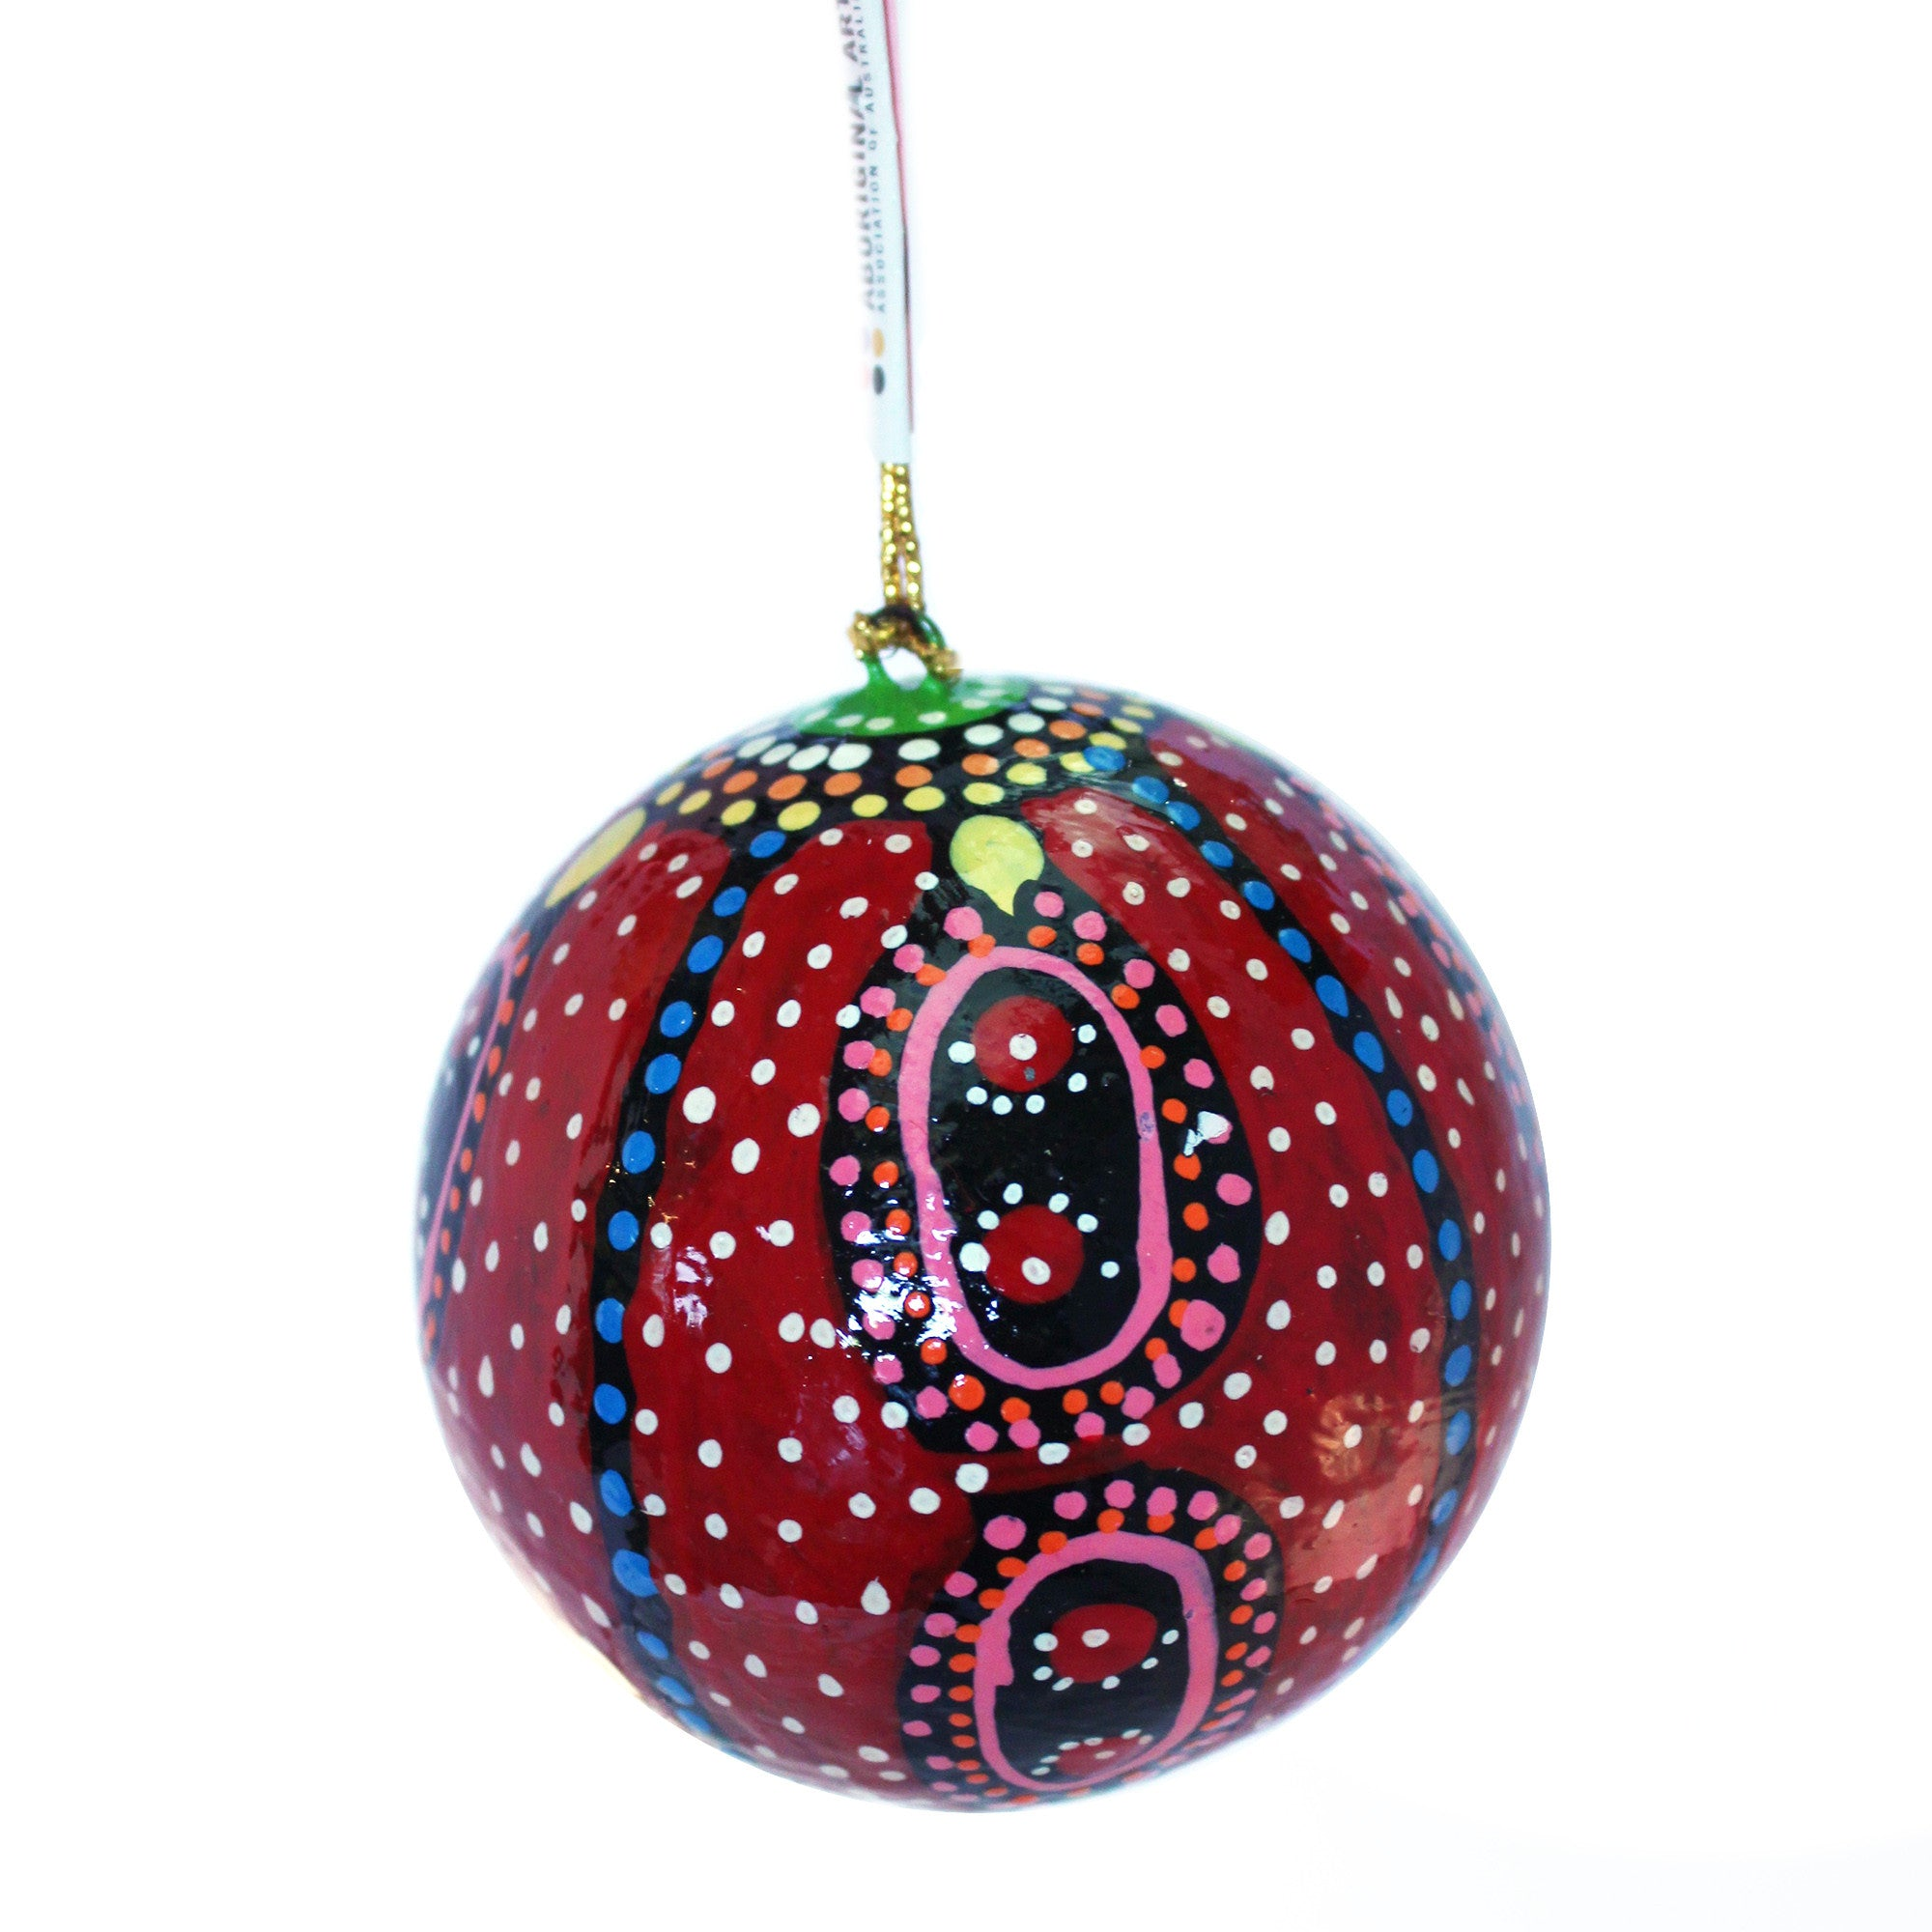 Paper Mache Christmas Ornament.Paper Mache Christmas Ball Marie Young